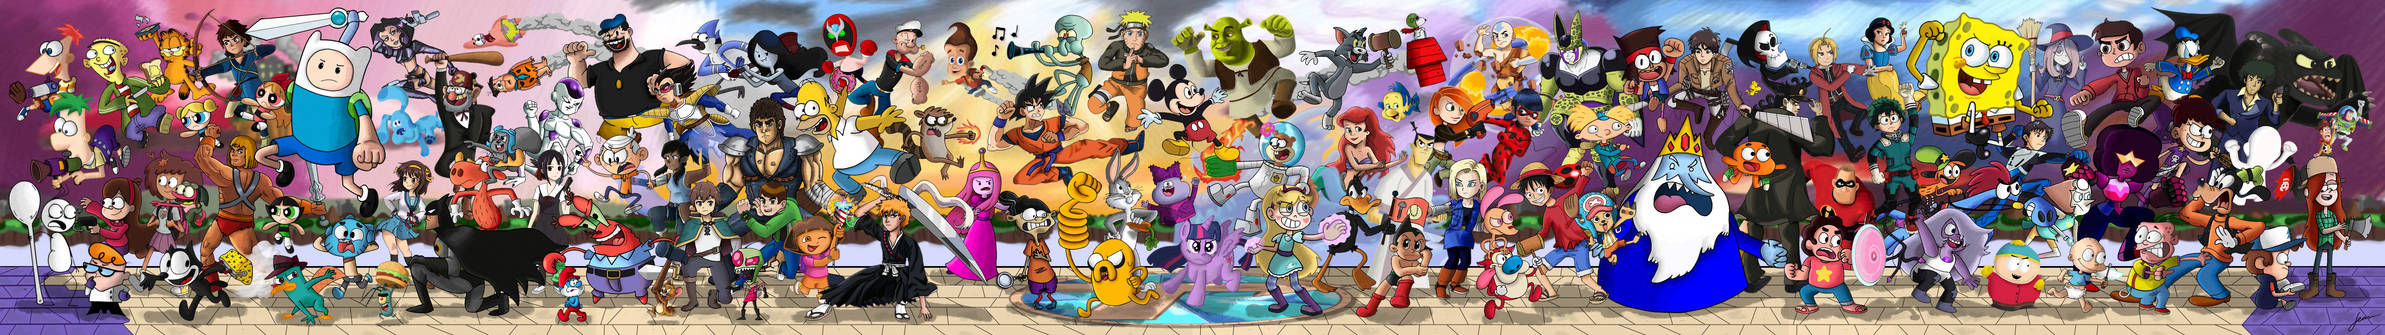 The Tooniverse Collides!